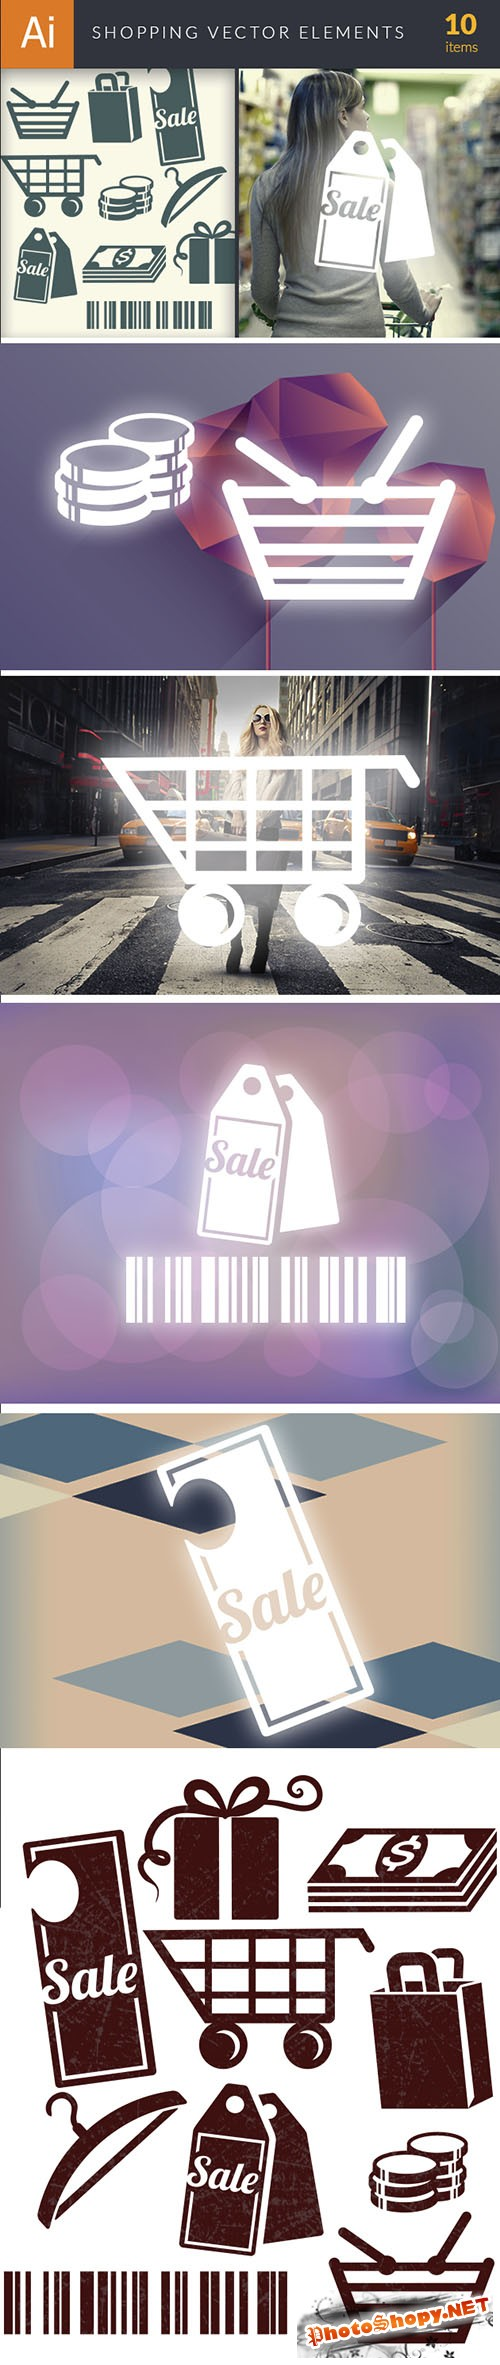 Simple Shopping Vector Elements Set 1